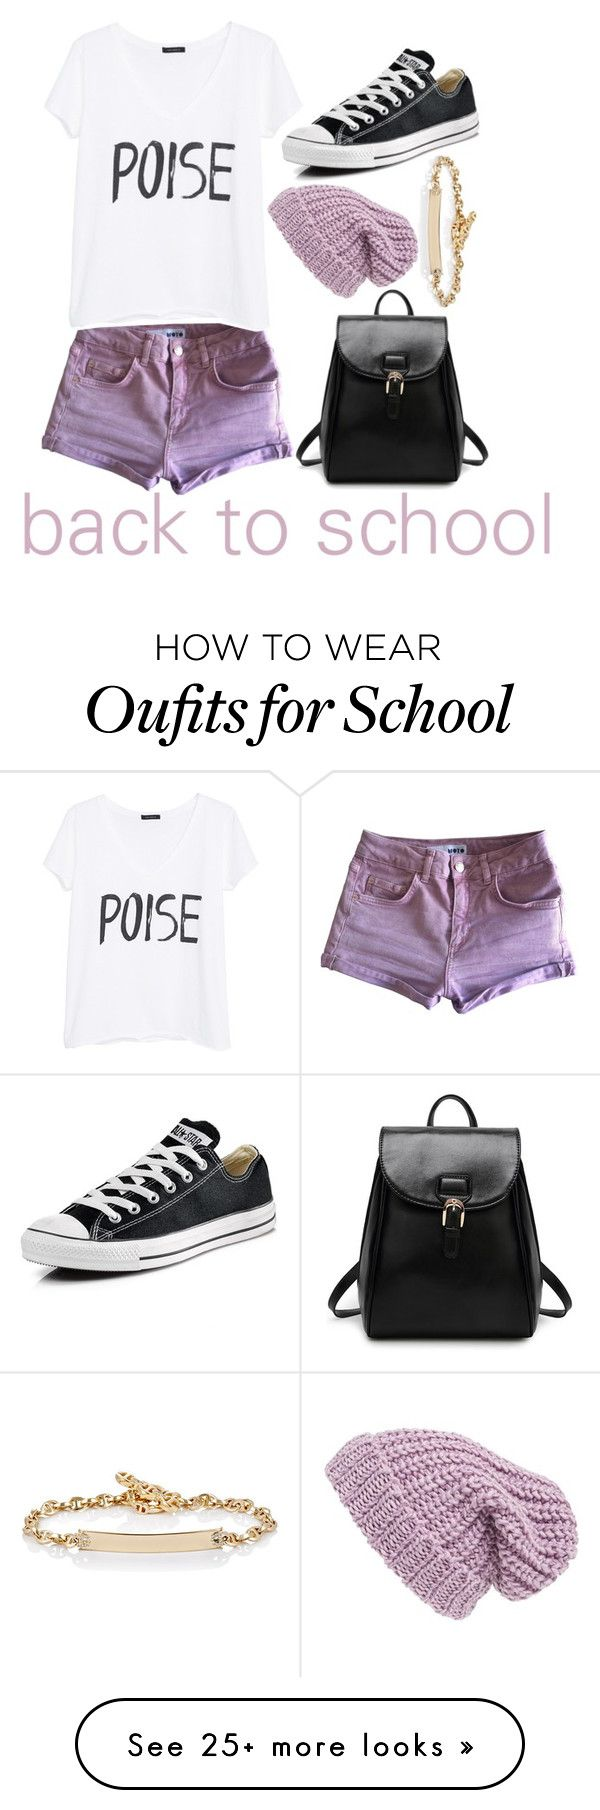 """""""29. back to school outfit"""" by beautiful-nxghtmare on Polyvore featuring Topshop, MANGO, Converse, Phase 3 and Hoorsenbuhs"""